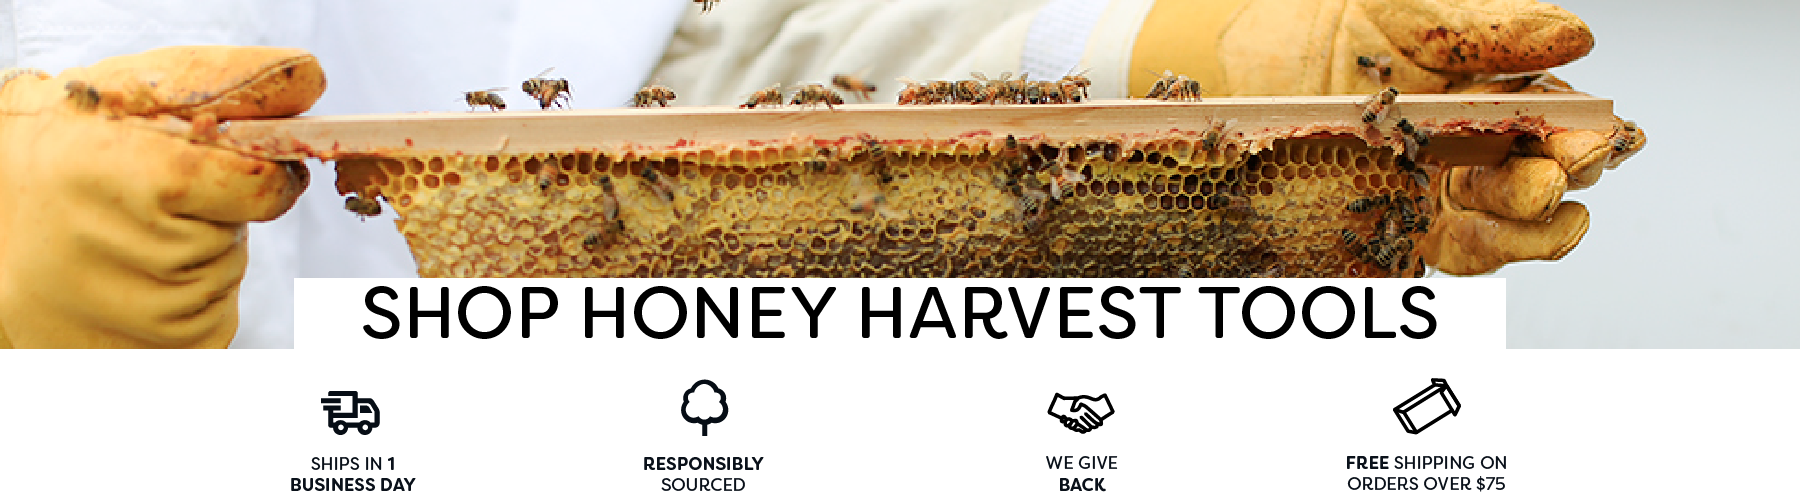 Essential honey harvesting tools for foundationless beekeeping, including strainers, comb stands, solar wax melters, and crush and straining systems. Make harvesting easy!